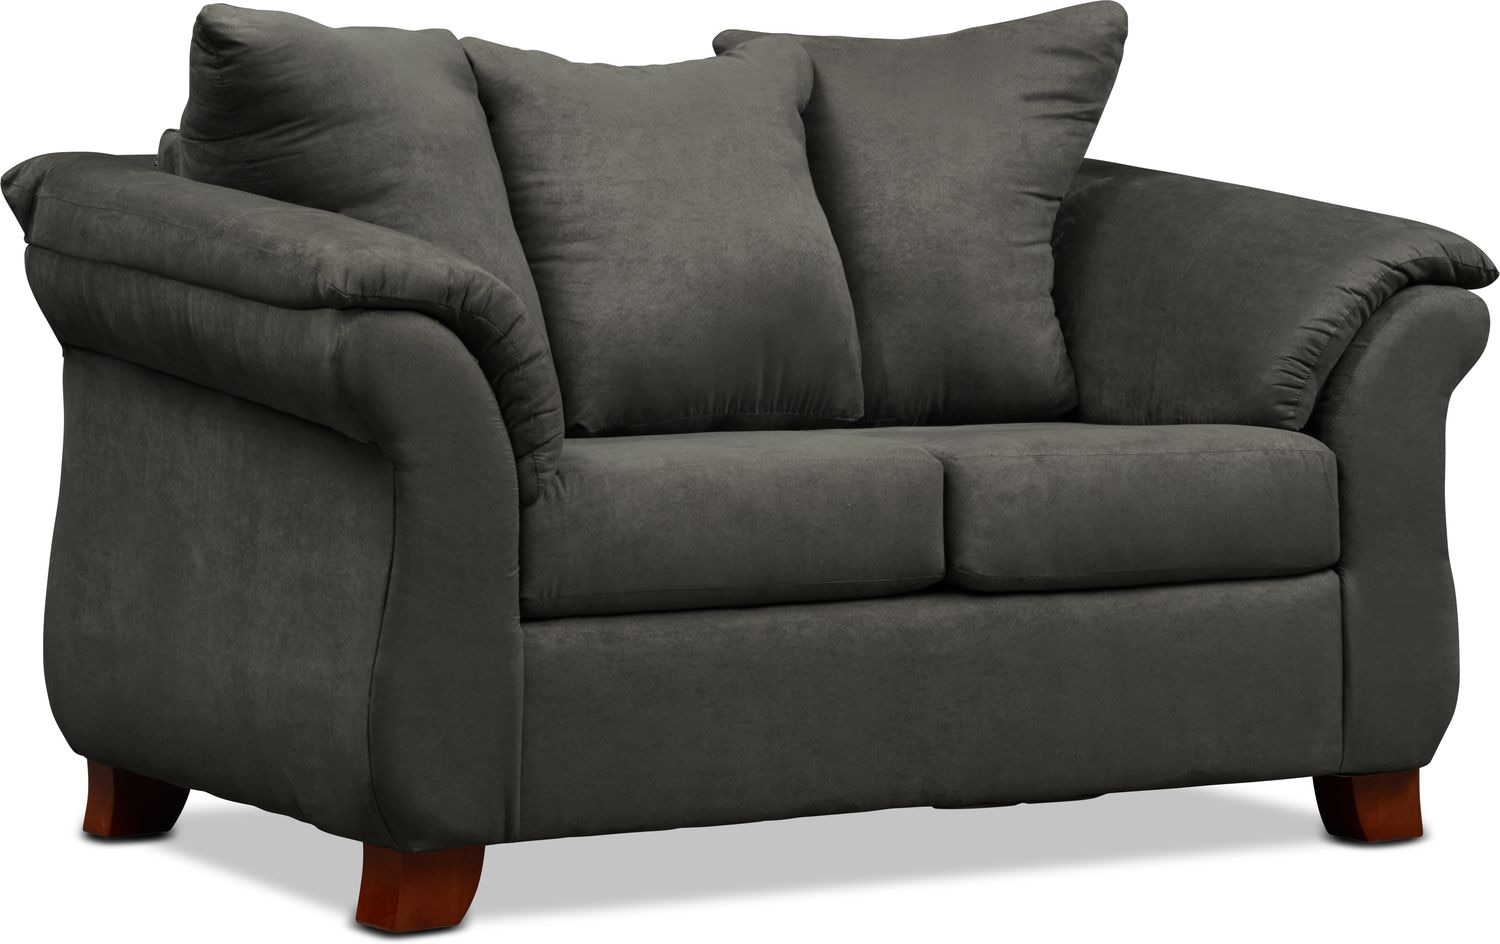 Living Room Furniture - Adrian Loveseat